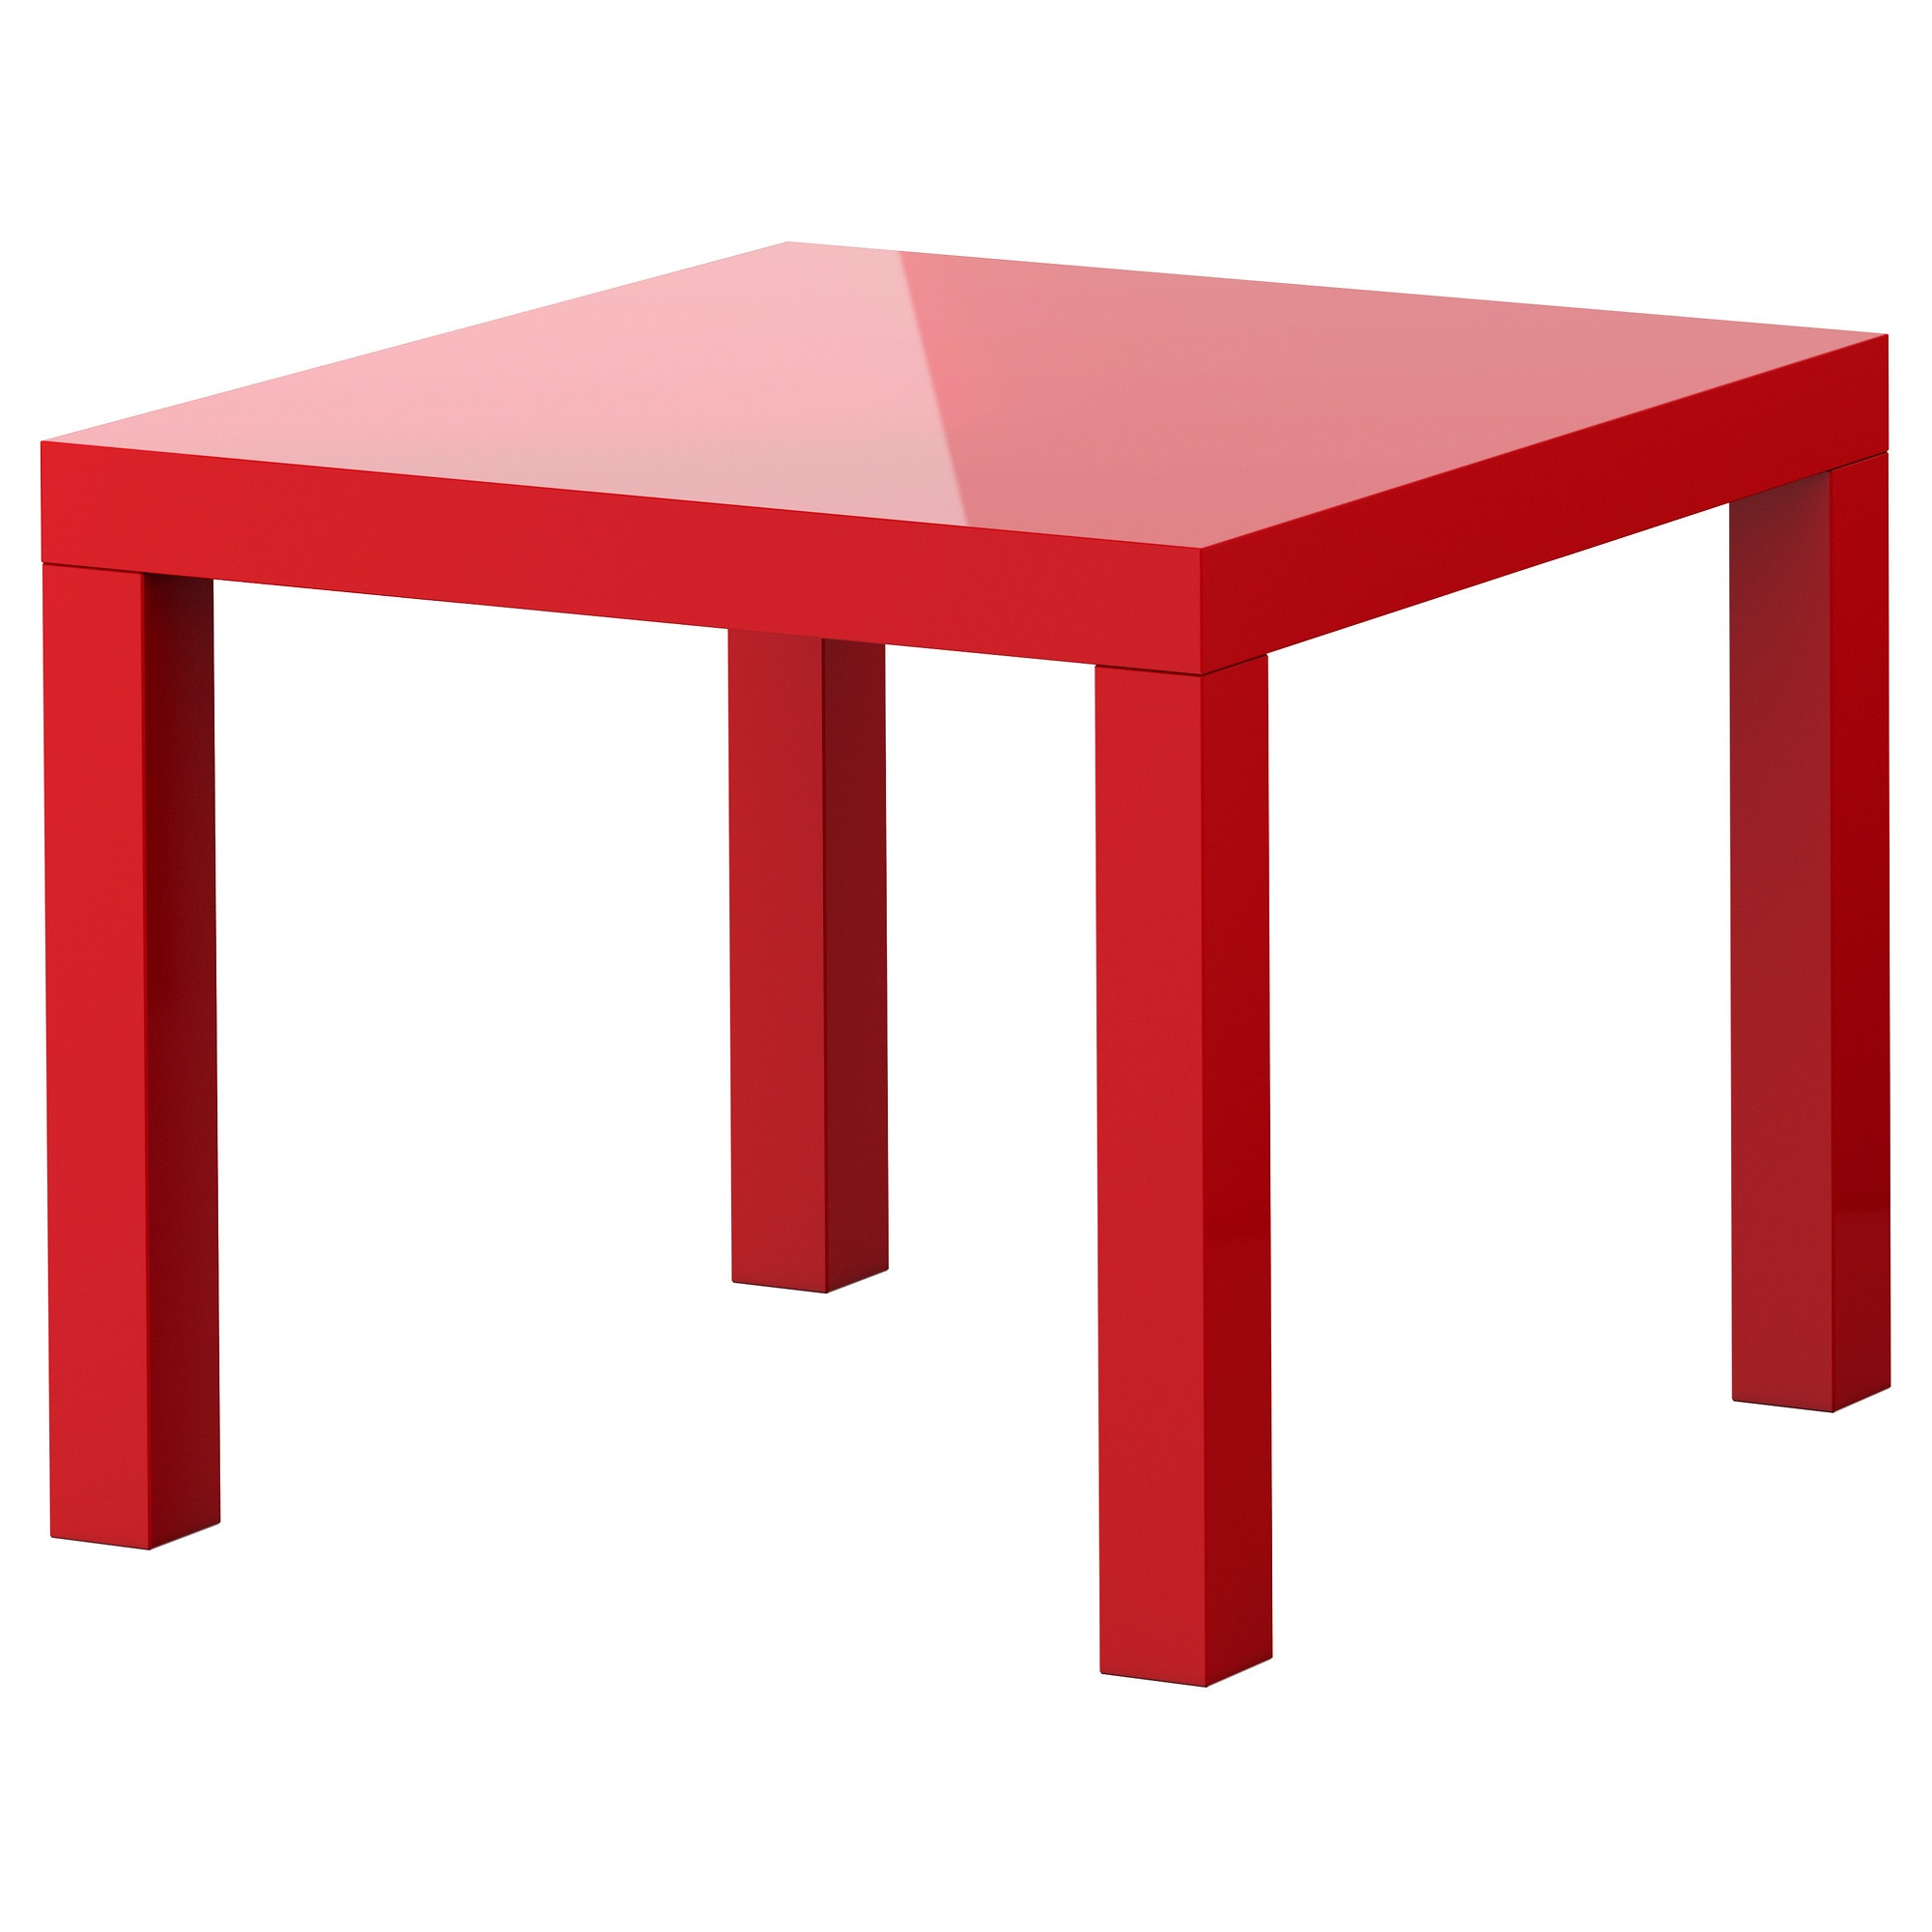 LACK Side table - high gloss red, 21 5/8x21 5/8